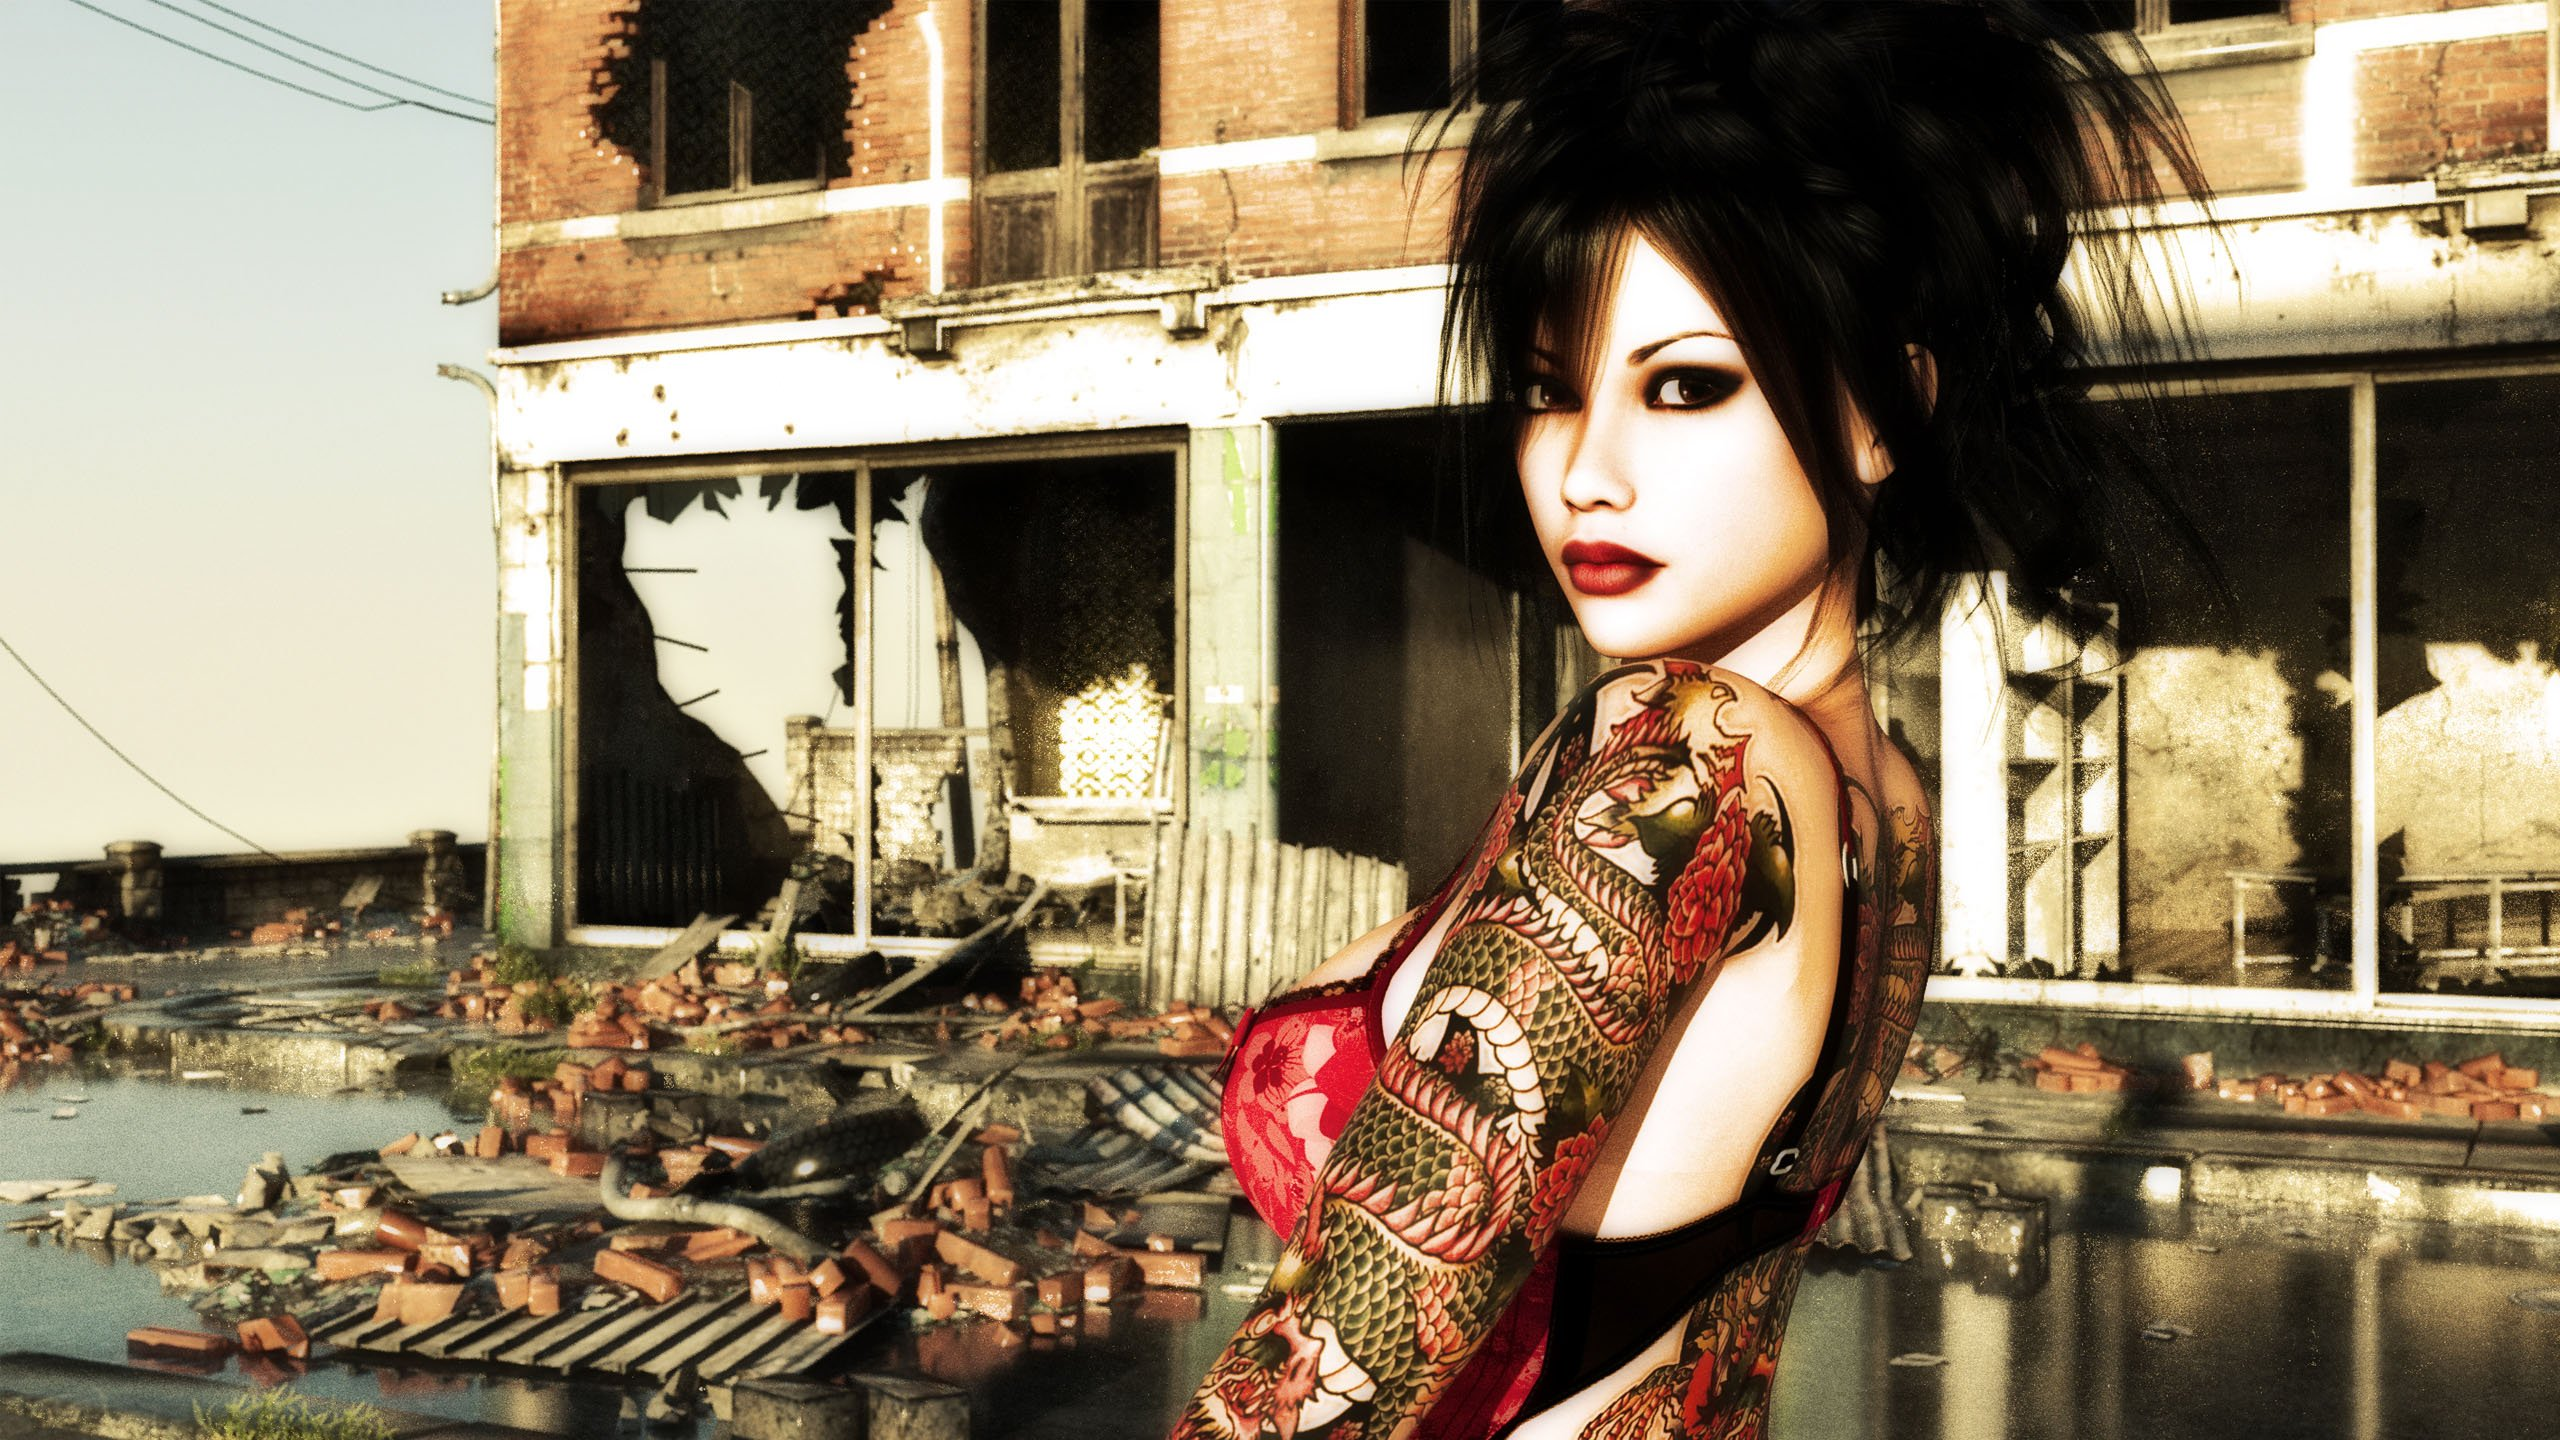 Image Tattooed Girl   Daz 3D wallpapers and stock photos 2560x1440